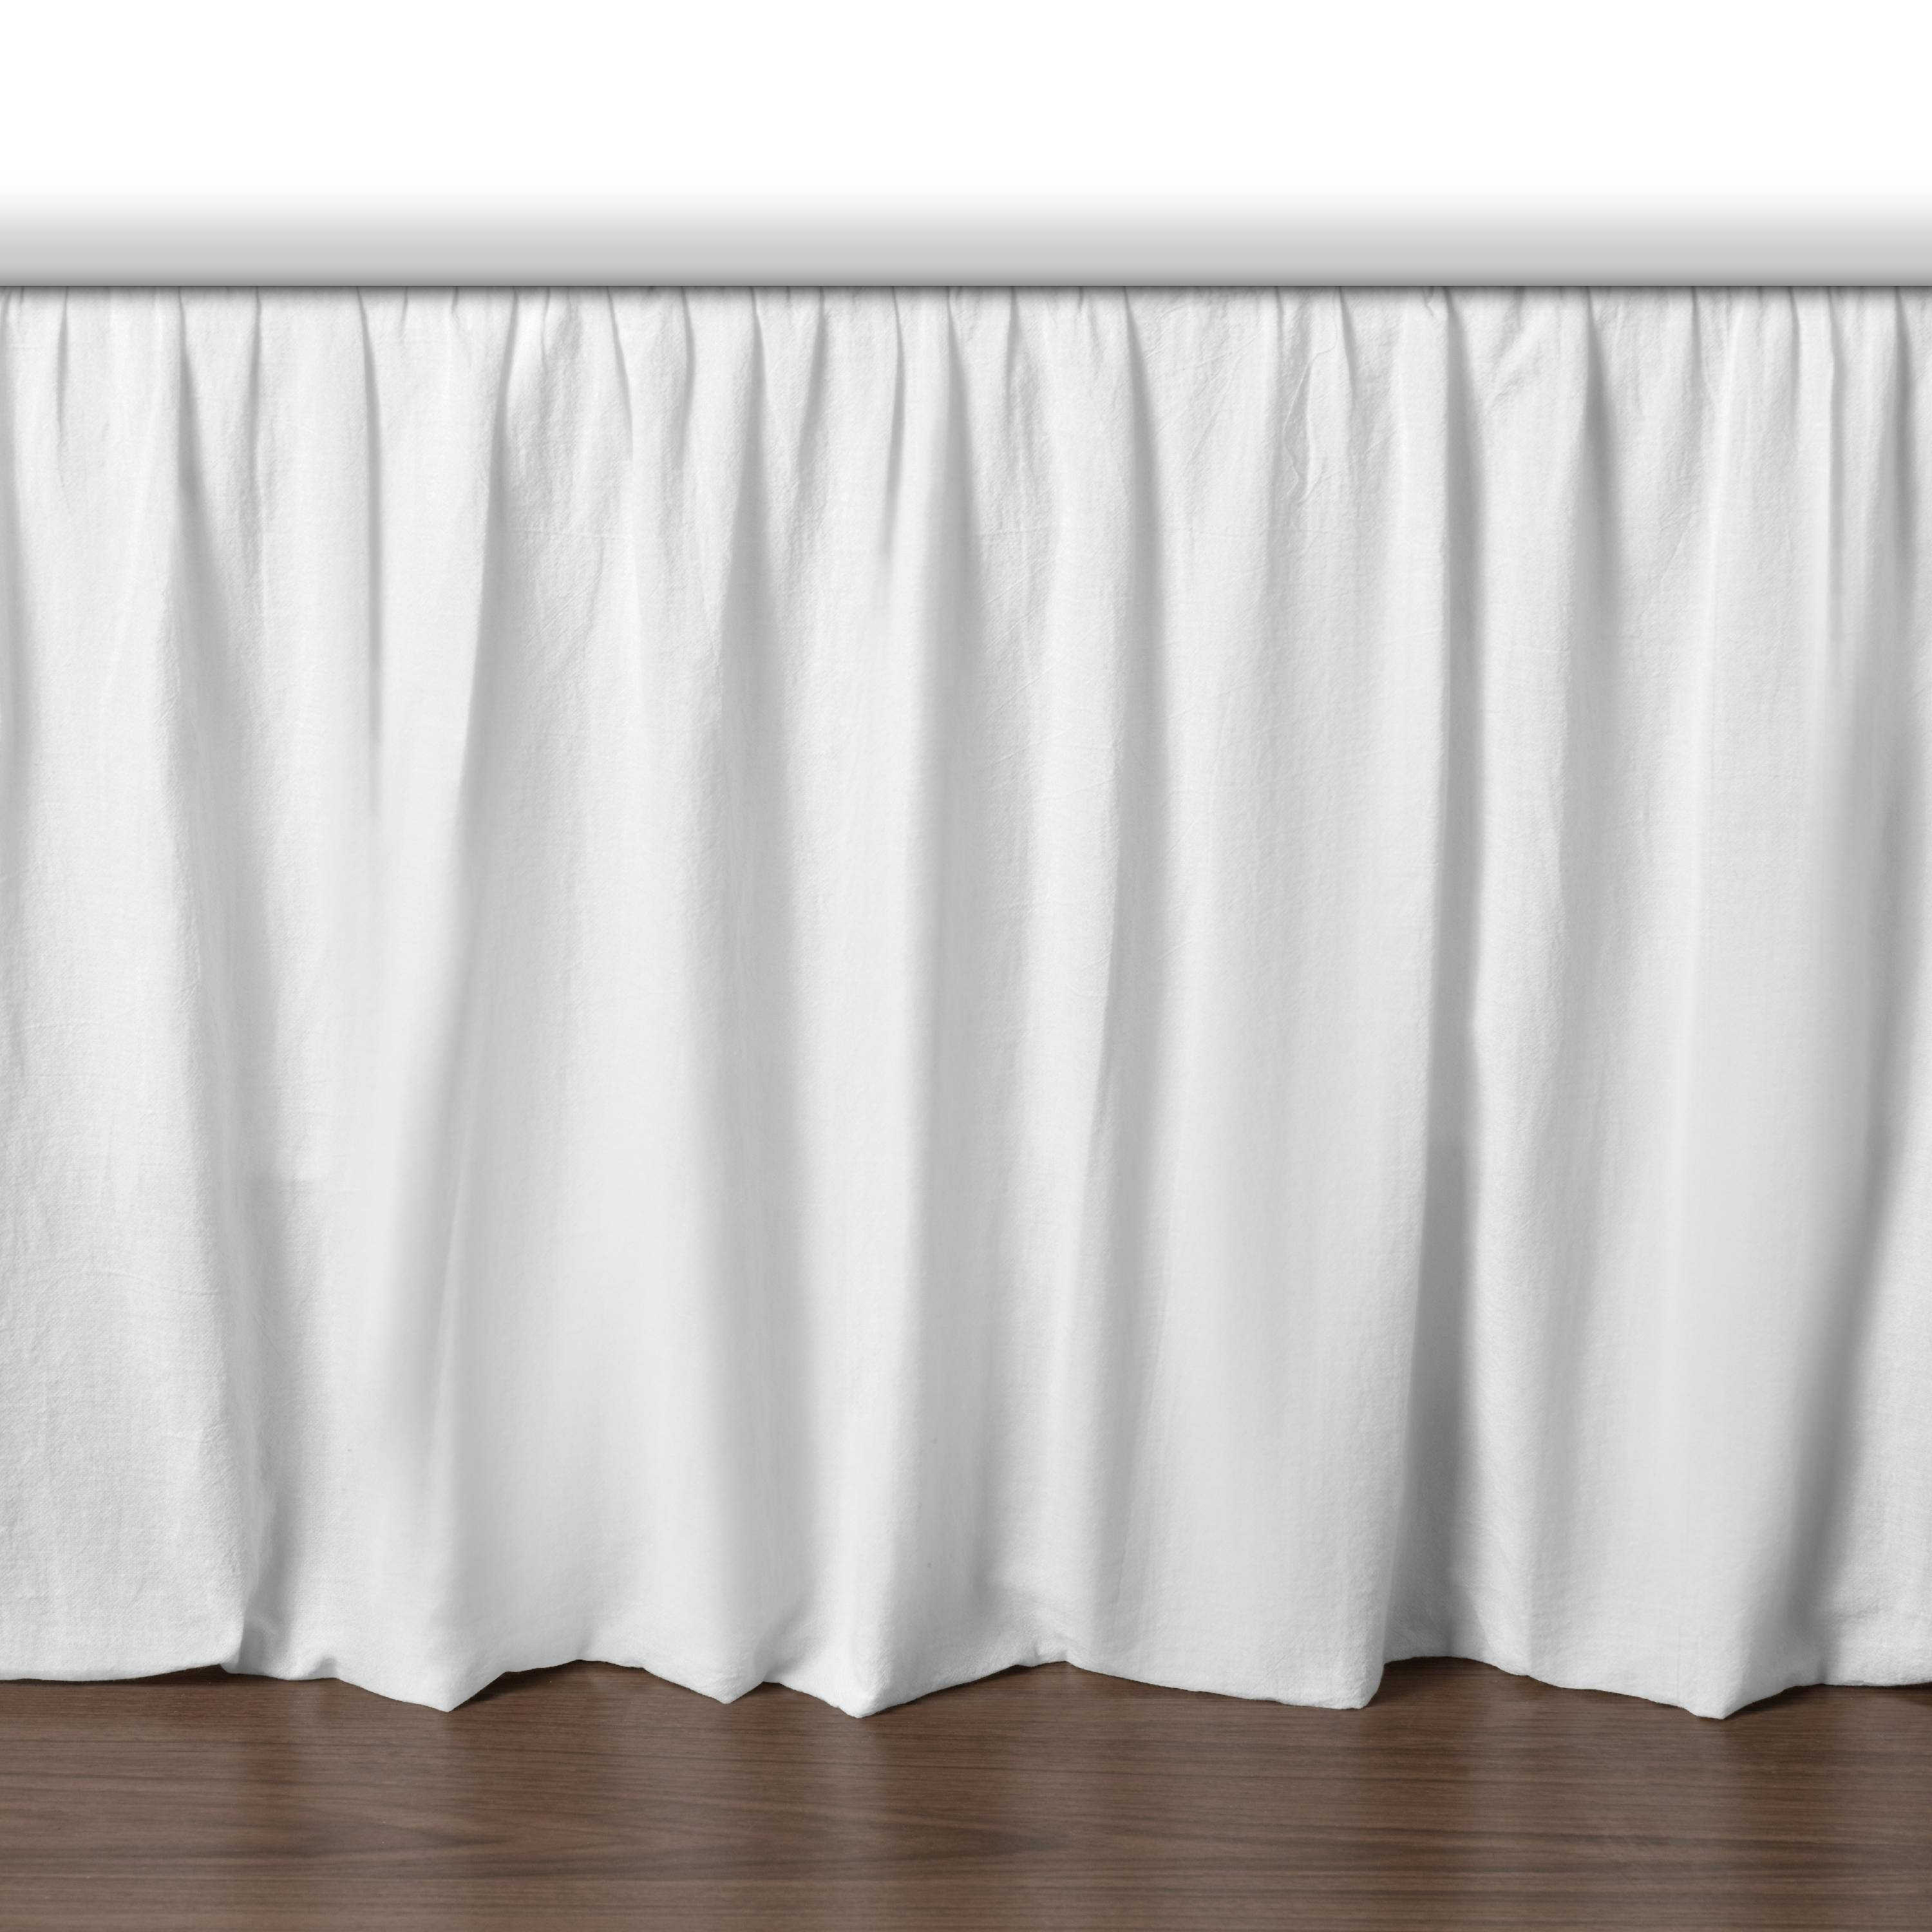 HOTEL STYLE VOILE BEDSKIRT